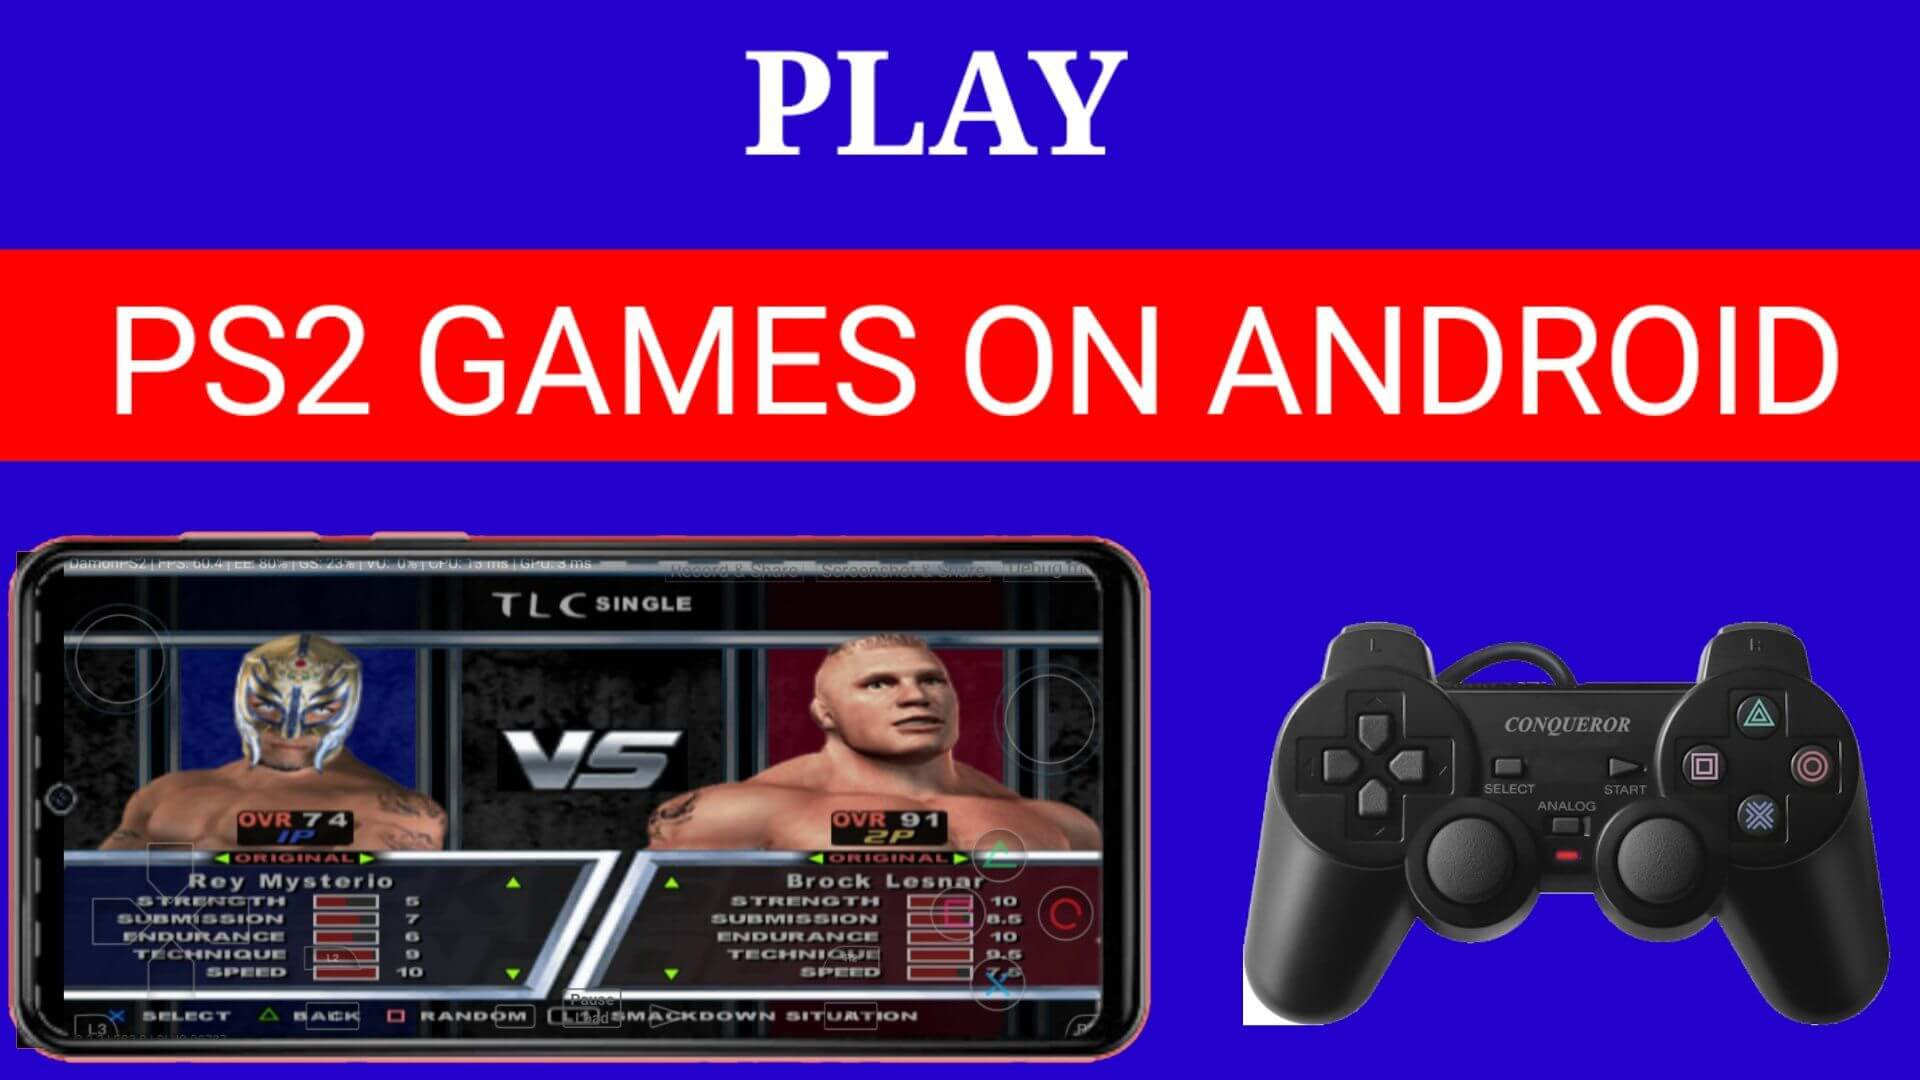 How To Play PS2 Games On Android | PS2 Emulator For Android